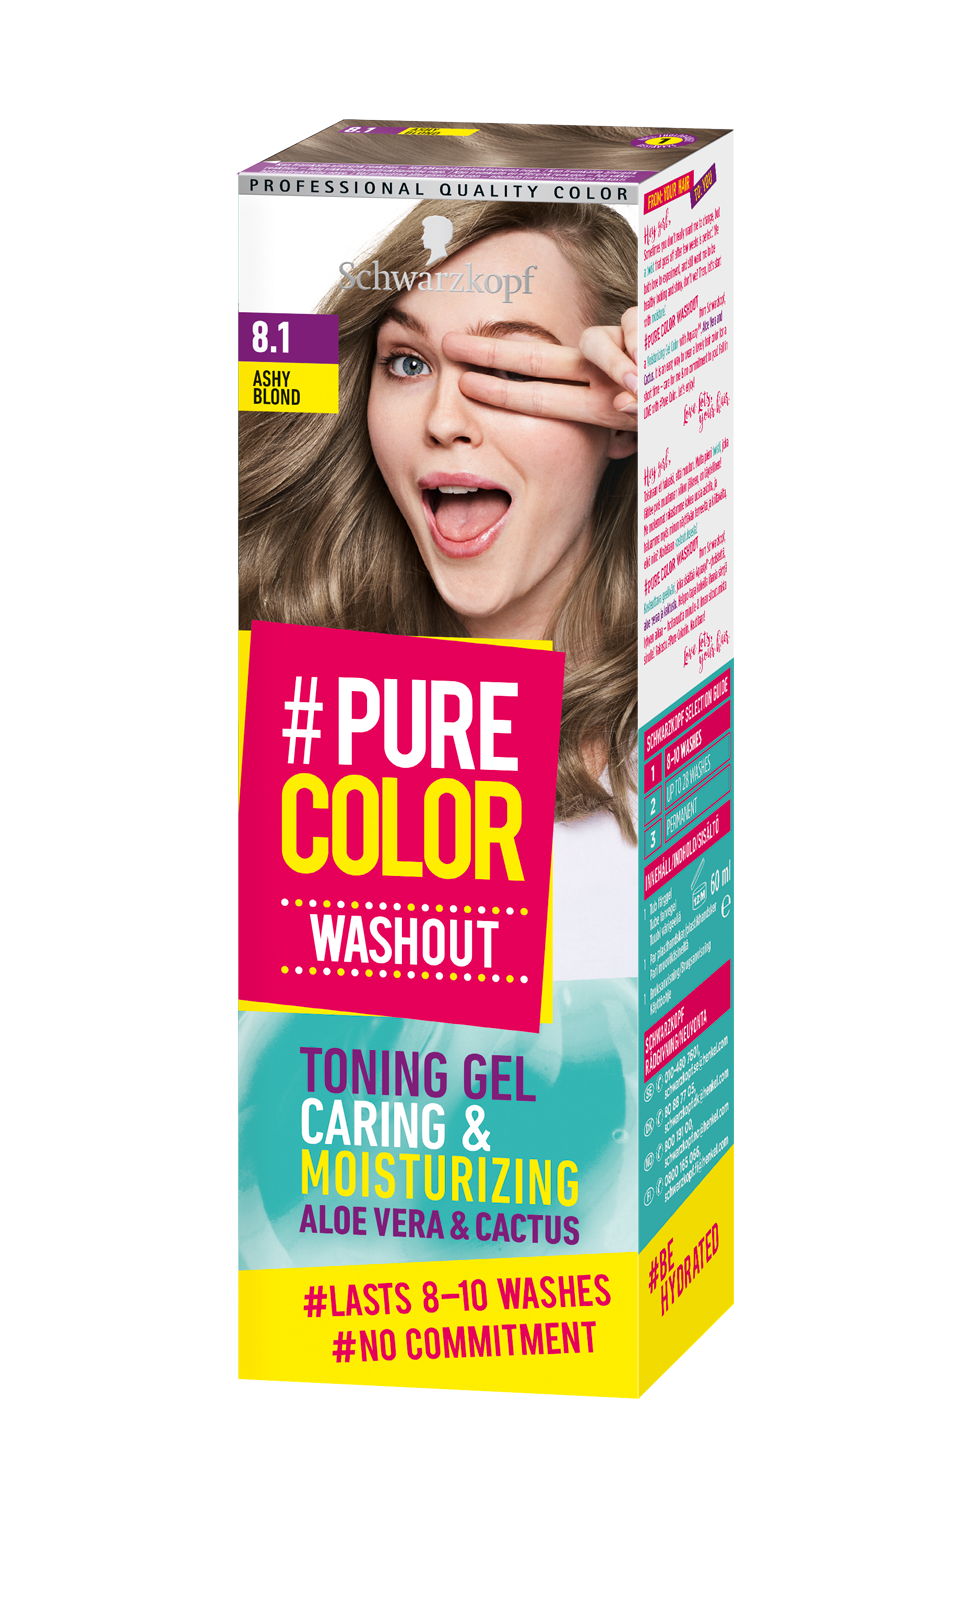 Pure-color-washout-8-1-ashy-blond